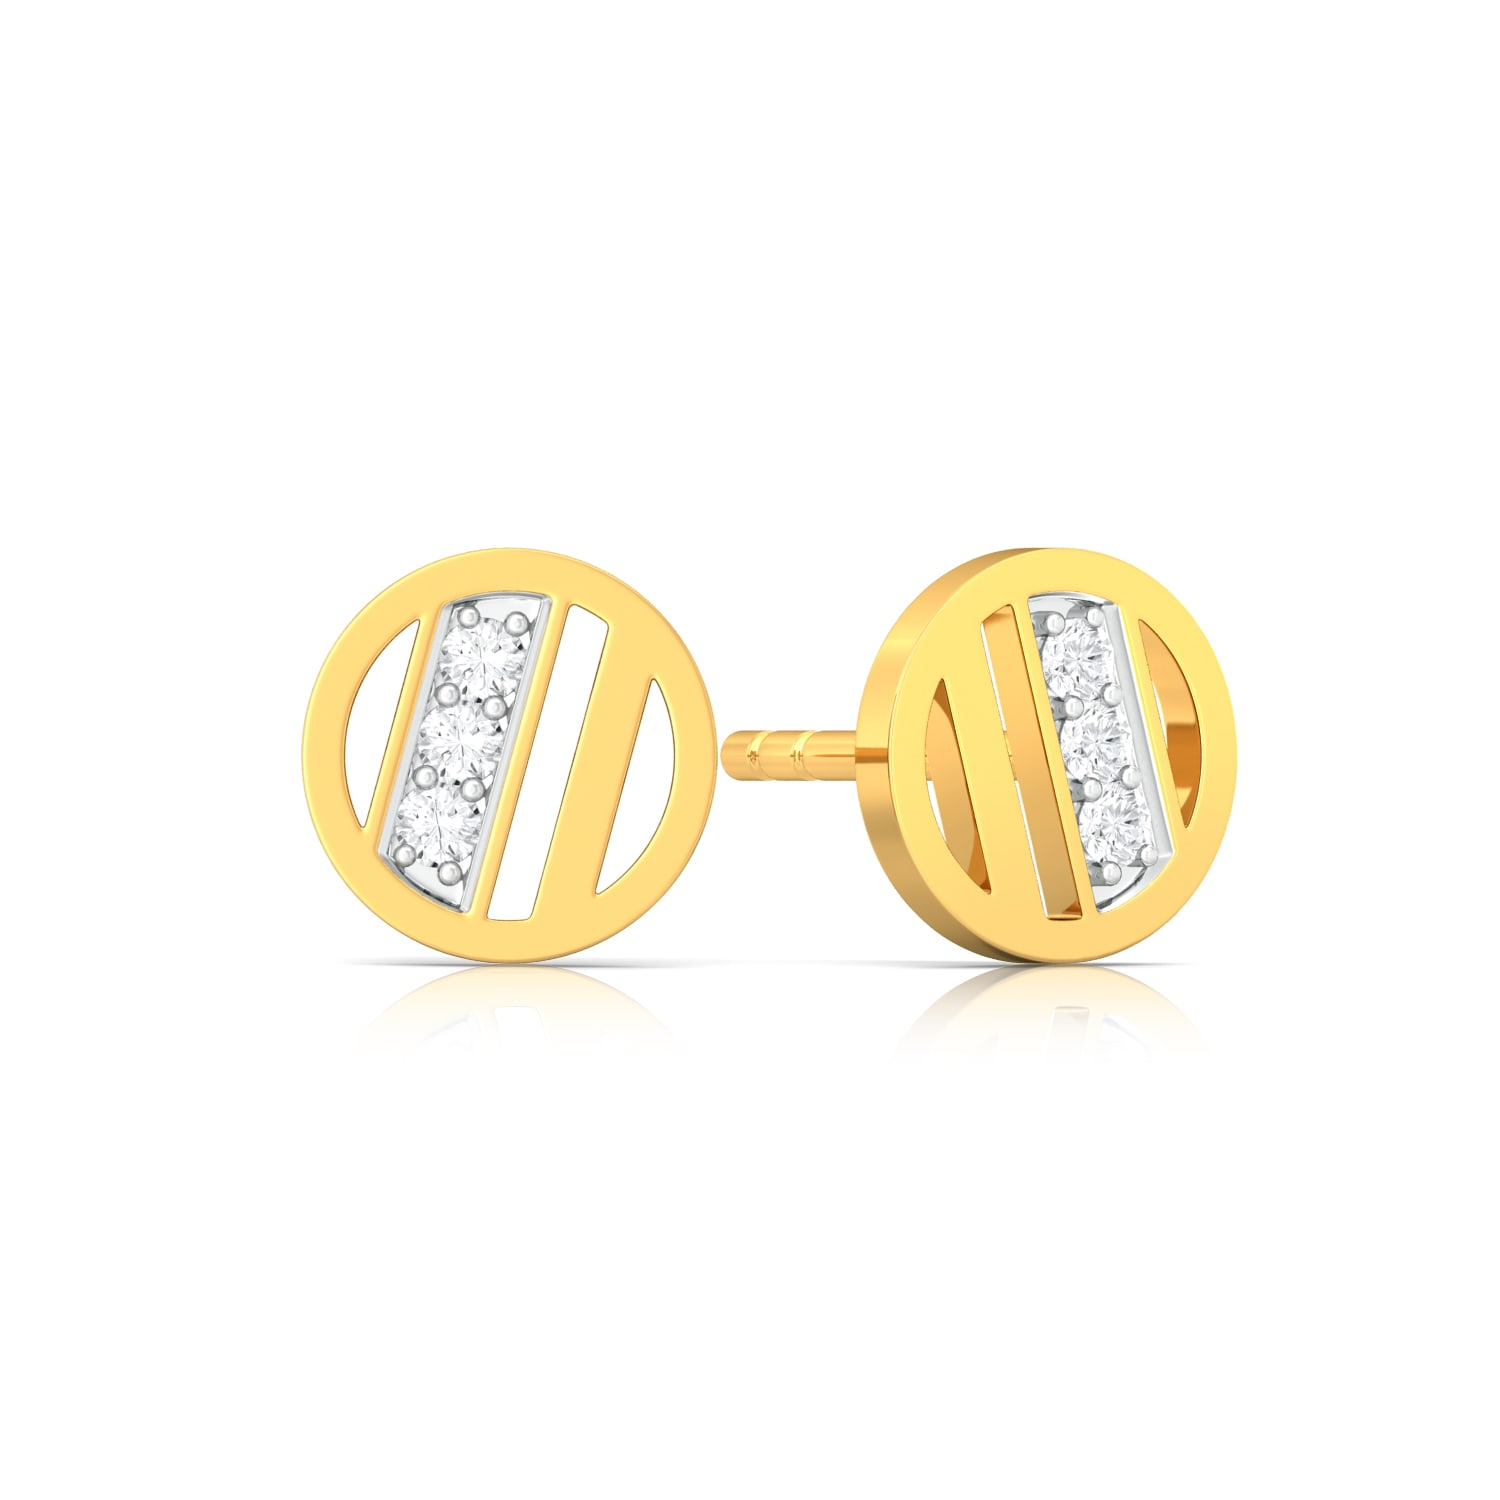 Summer Sun Diamond Earrings